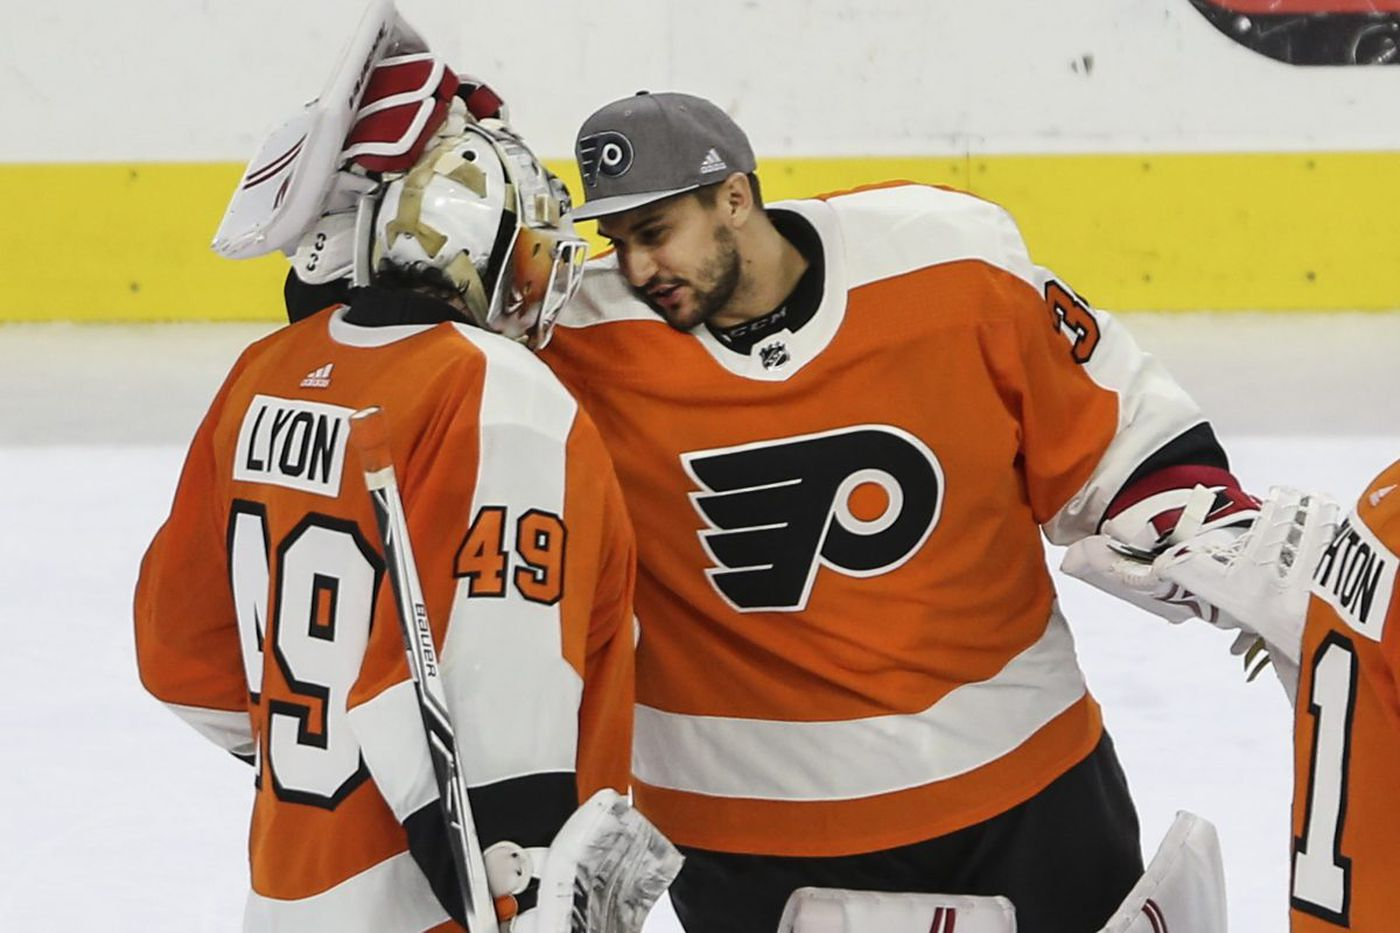 For Flyers goalie Alex Lyon, the chip on his shoulder is another tool